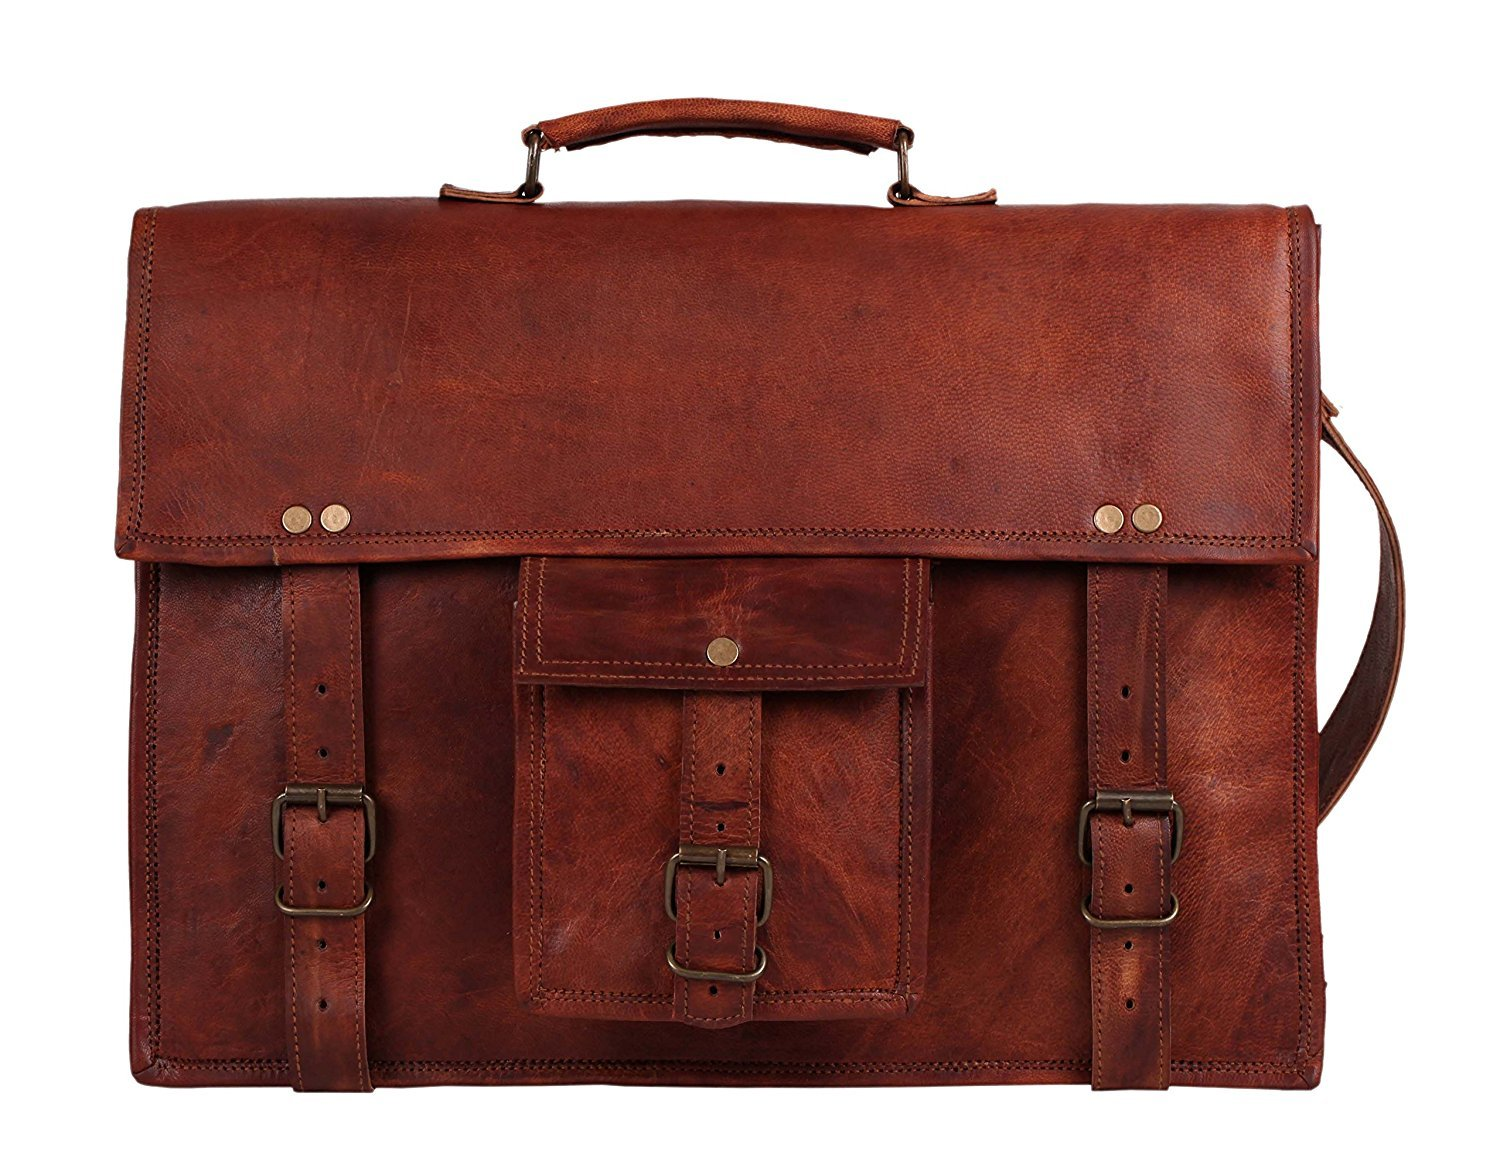 15 Inch Leather Vintage Rustic Crossbody Messenger Courier Satchel Bag Gift Men Women ~ Business Work Briefcase Carry Laptop Computer Book Handmade Rugged & Distressed~ Everyday Office (15)